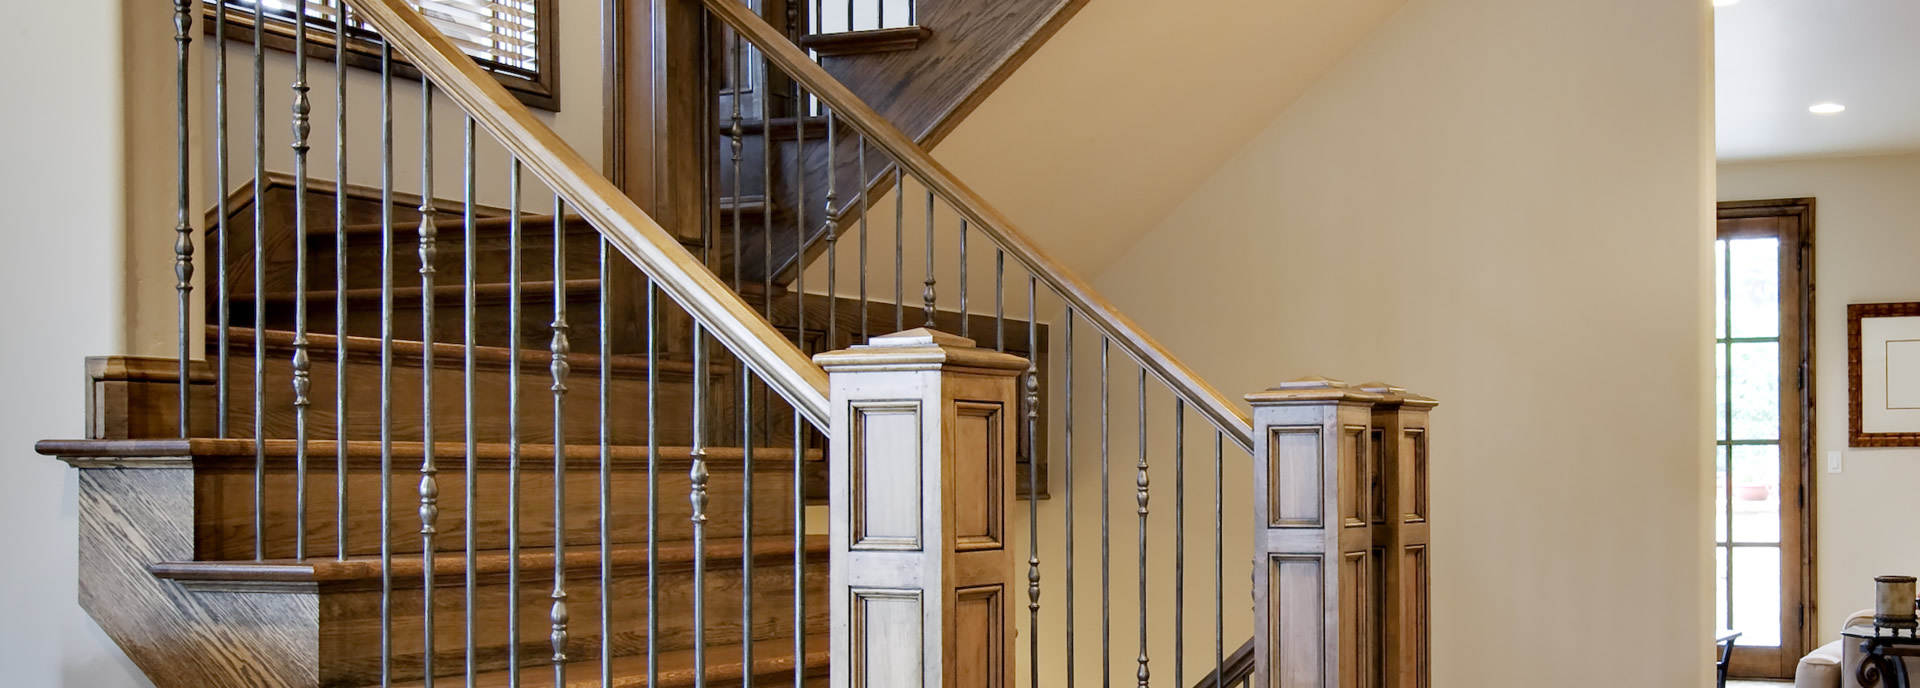 4 Elegant and Creative Circular Staircase Designs Alpharetta, GA